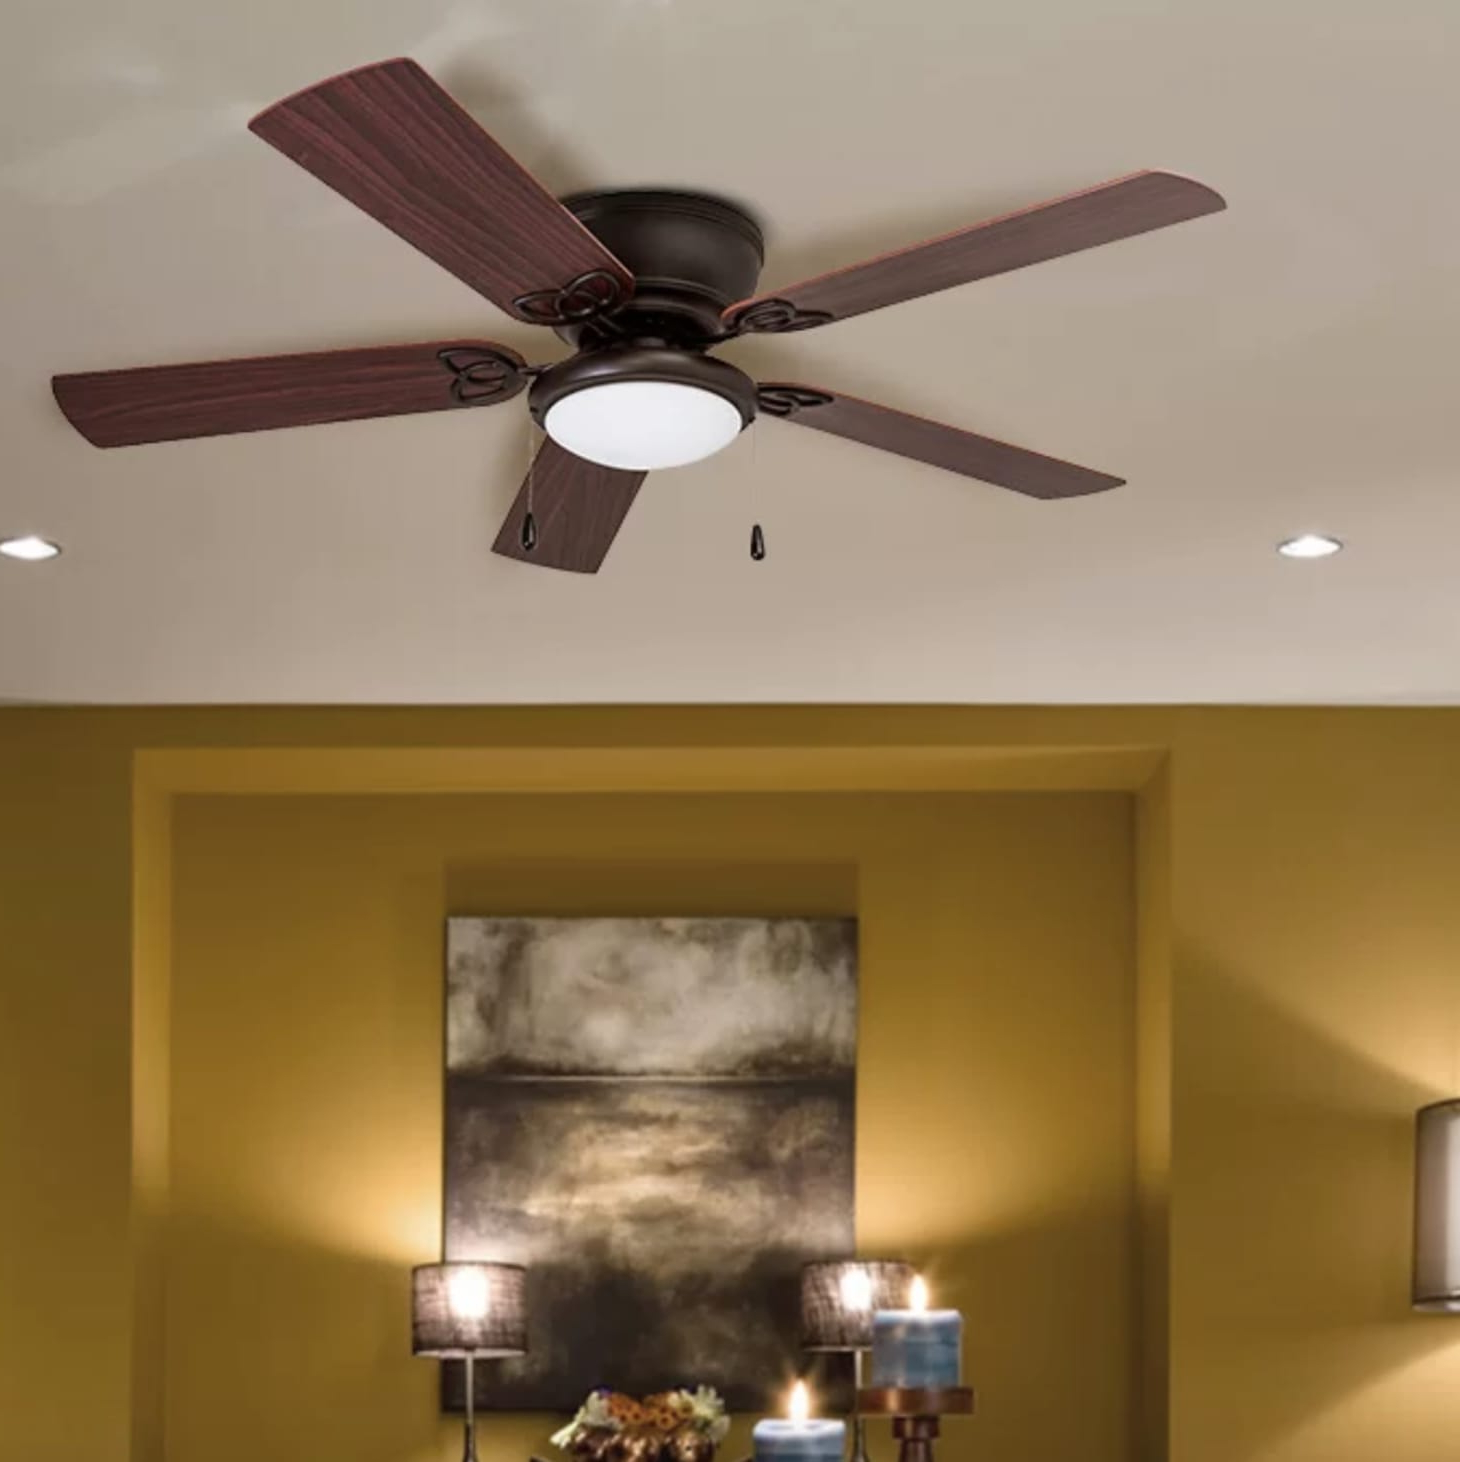 Famous 11 Modern And Attractive Ceiling Fans – For Outdoors Within Mattias 5 Blade Ceiling Fans (View 10 of 20)